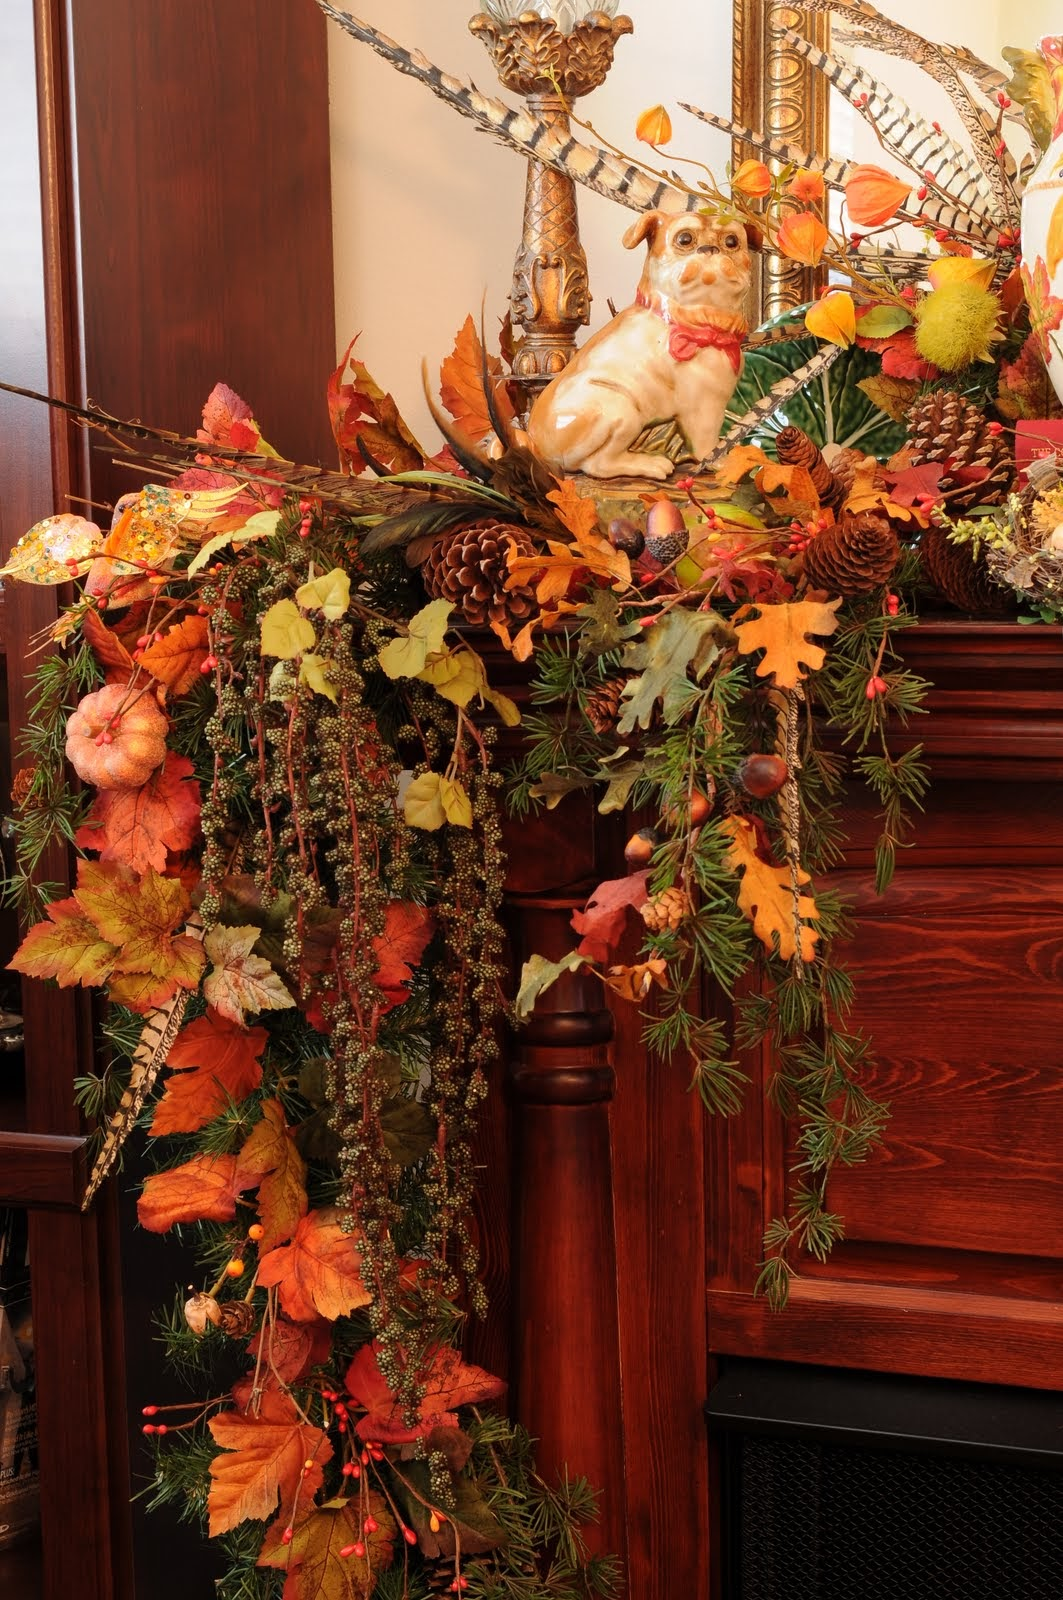 C b i d home decor and design fall decor thanksgiving for Fall decorations for the home